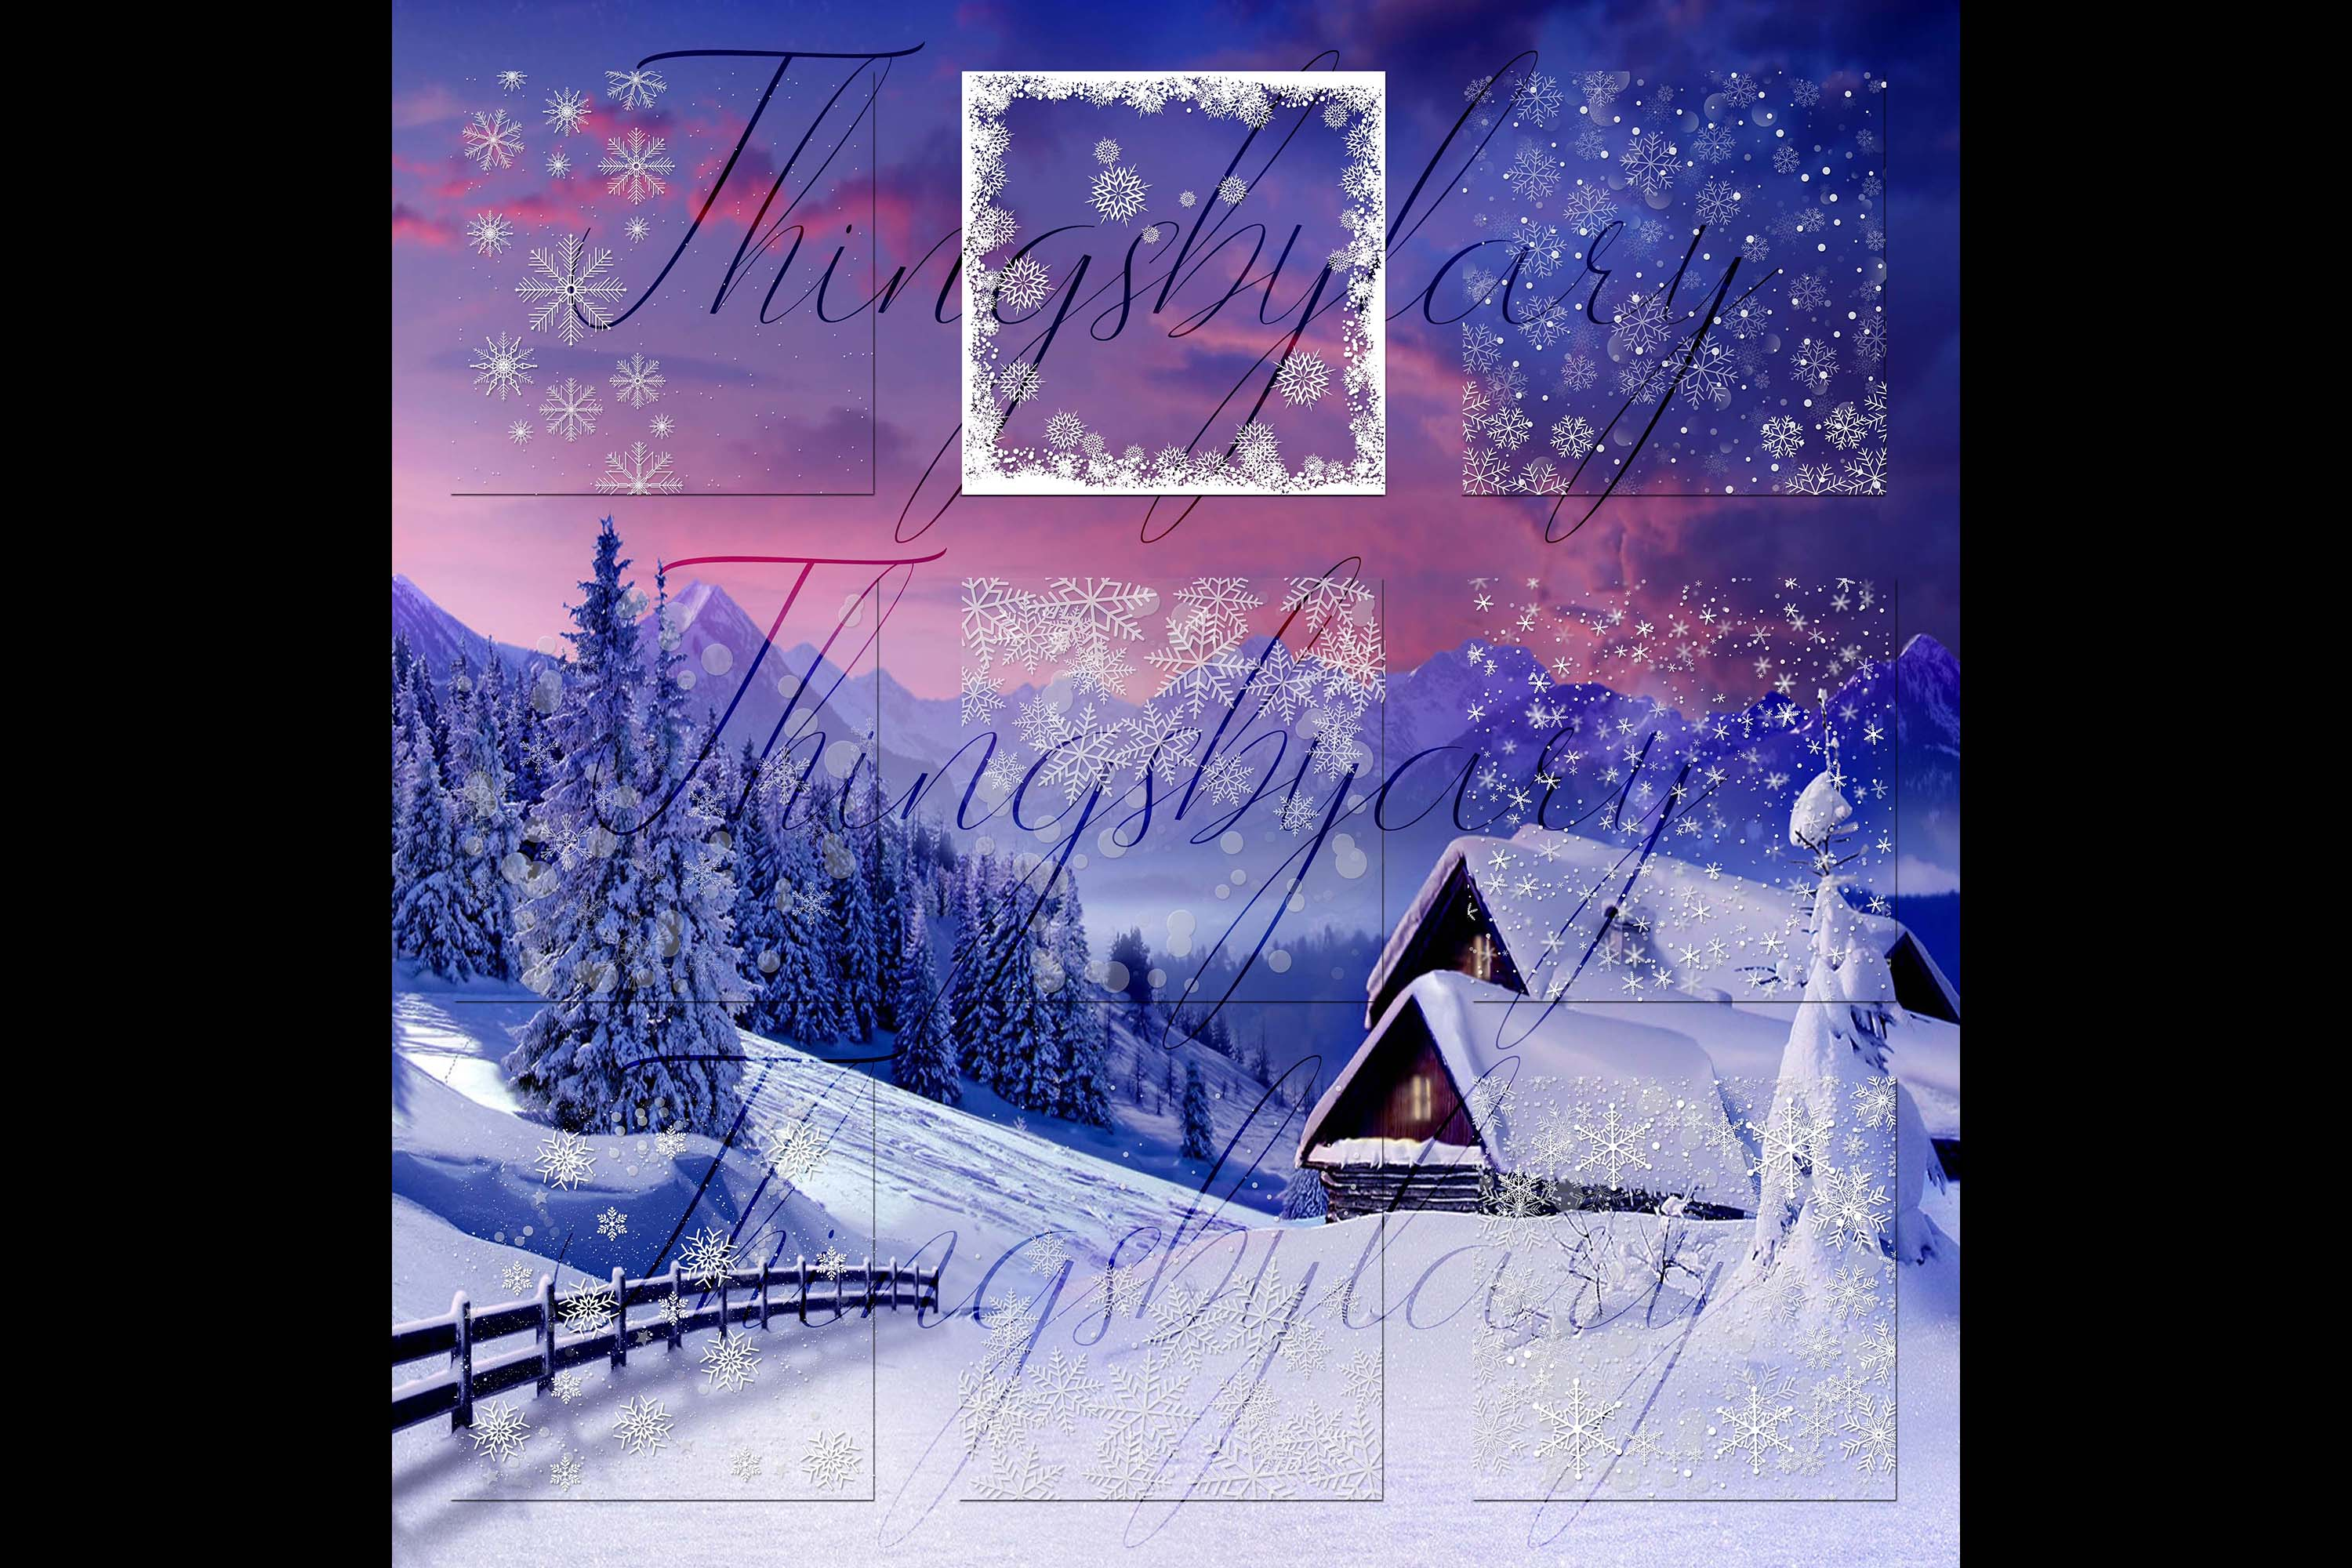 27 Falling Snowflakes Overlay Digital Images PNG Transparent example image 8